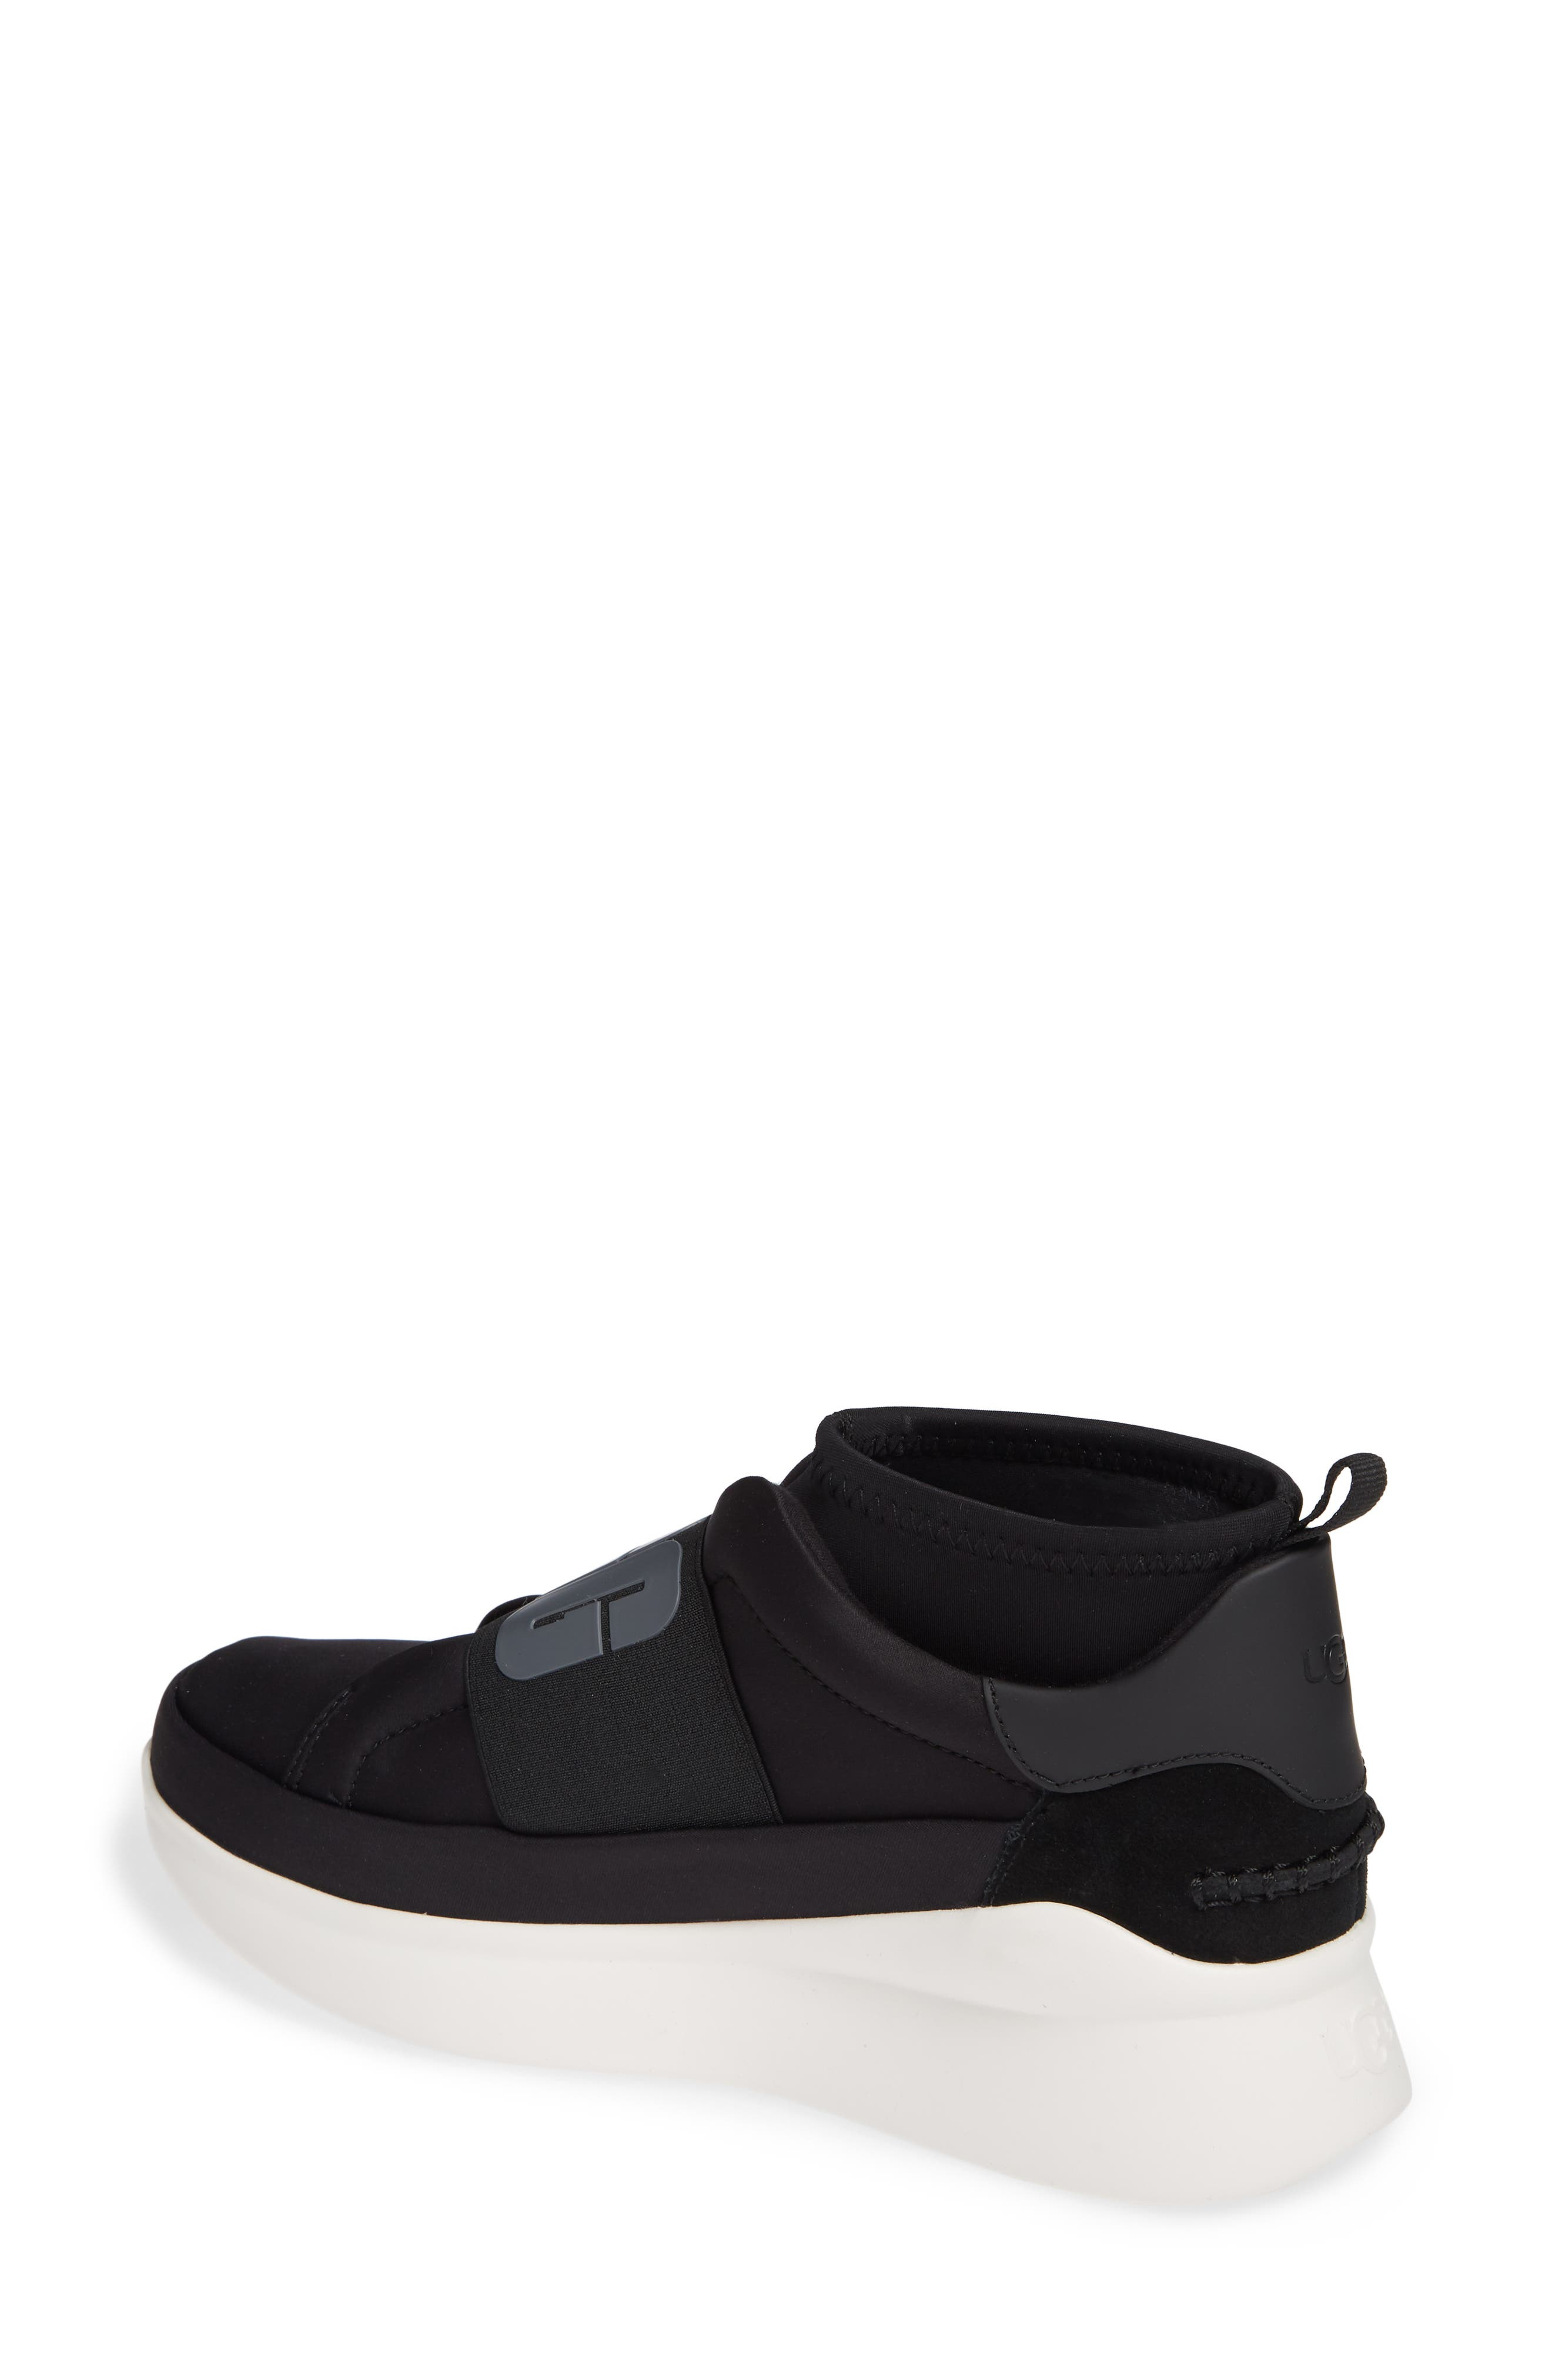 UGG<SUP>®</SUP>, Neutra Sock Sneaker, Alternate thumbnail 2, color, BLACK